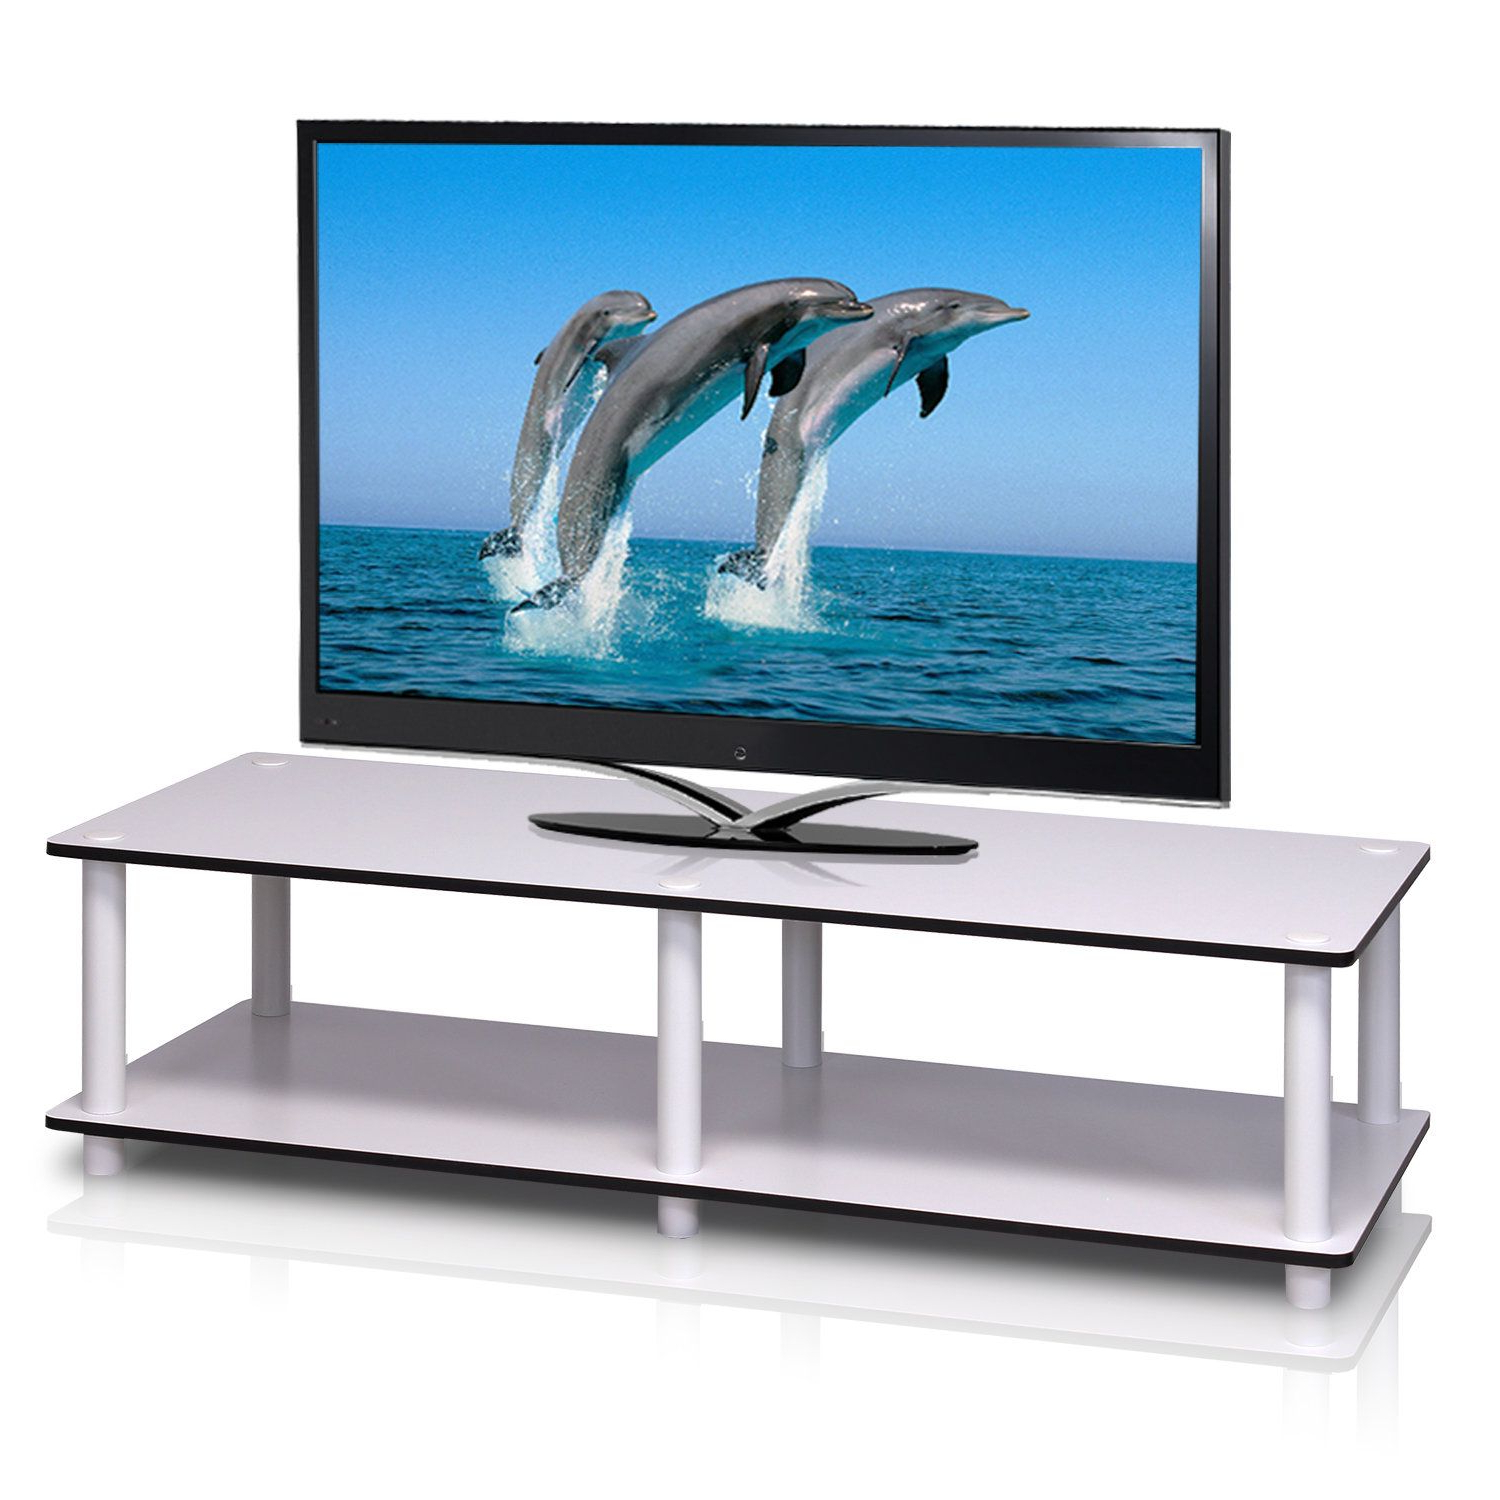 Addyson Media Console   Furinno, Tv Stand, Home Regarding Furinno 2 Tier Elevated Tv Stands (View 11 of 20)